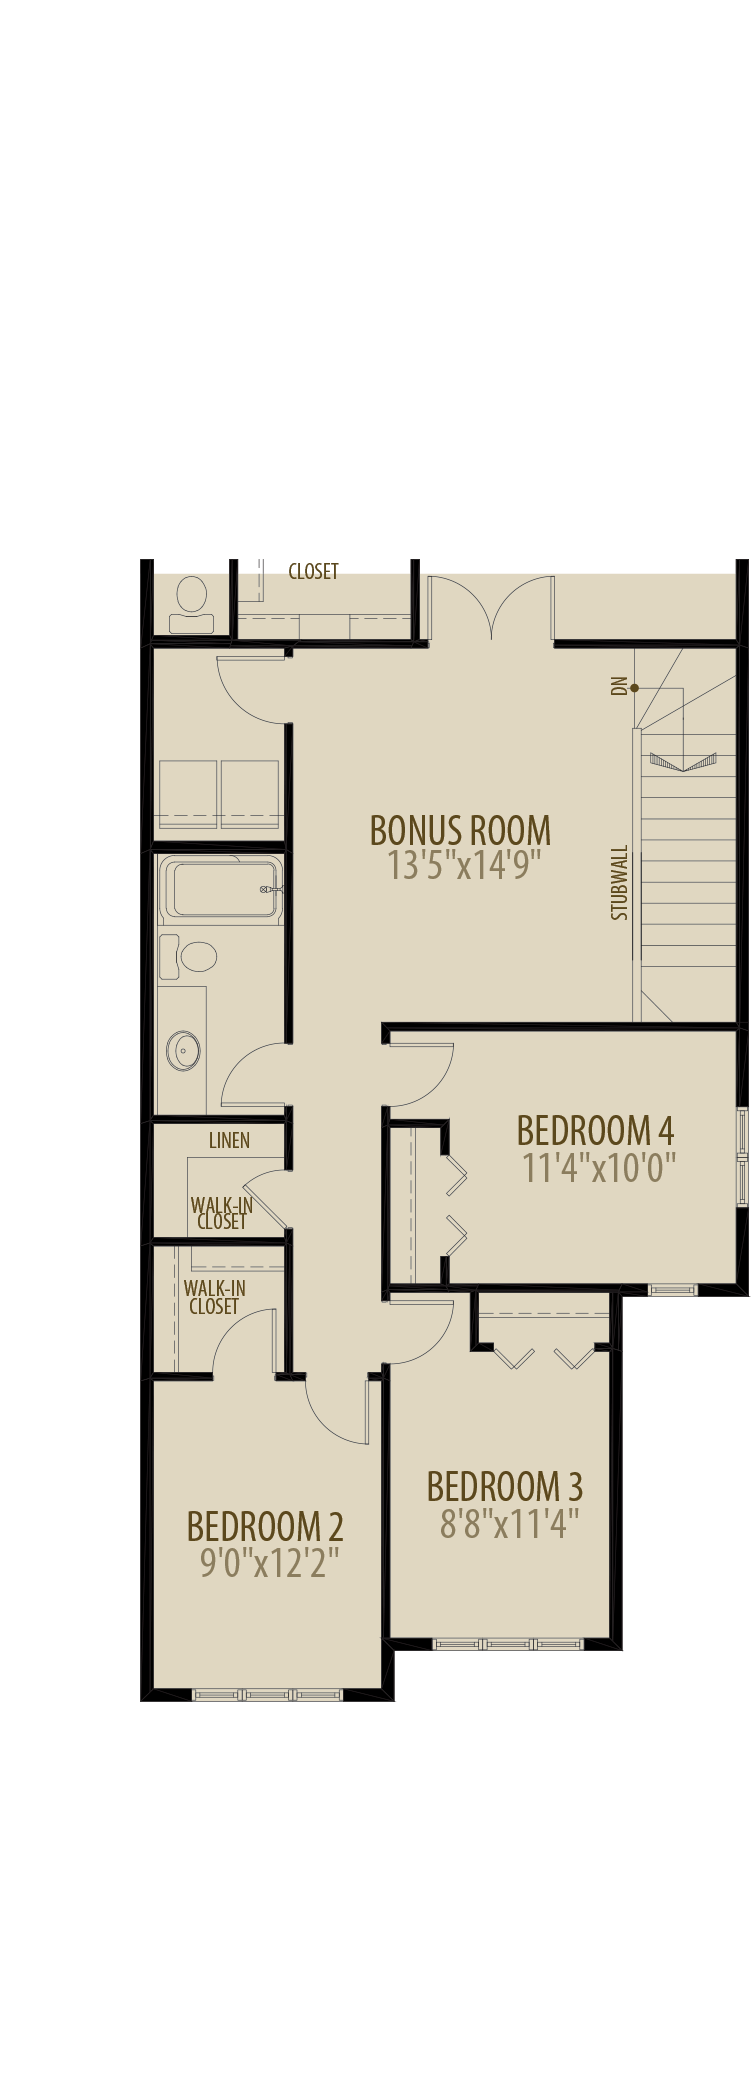 4th Bedroom (Adds 229 SQ FT)